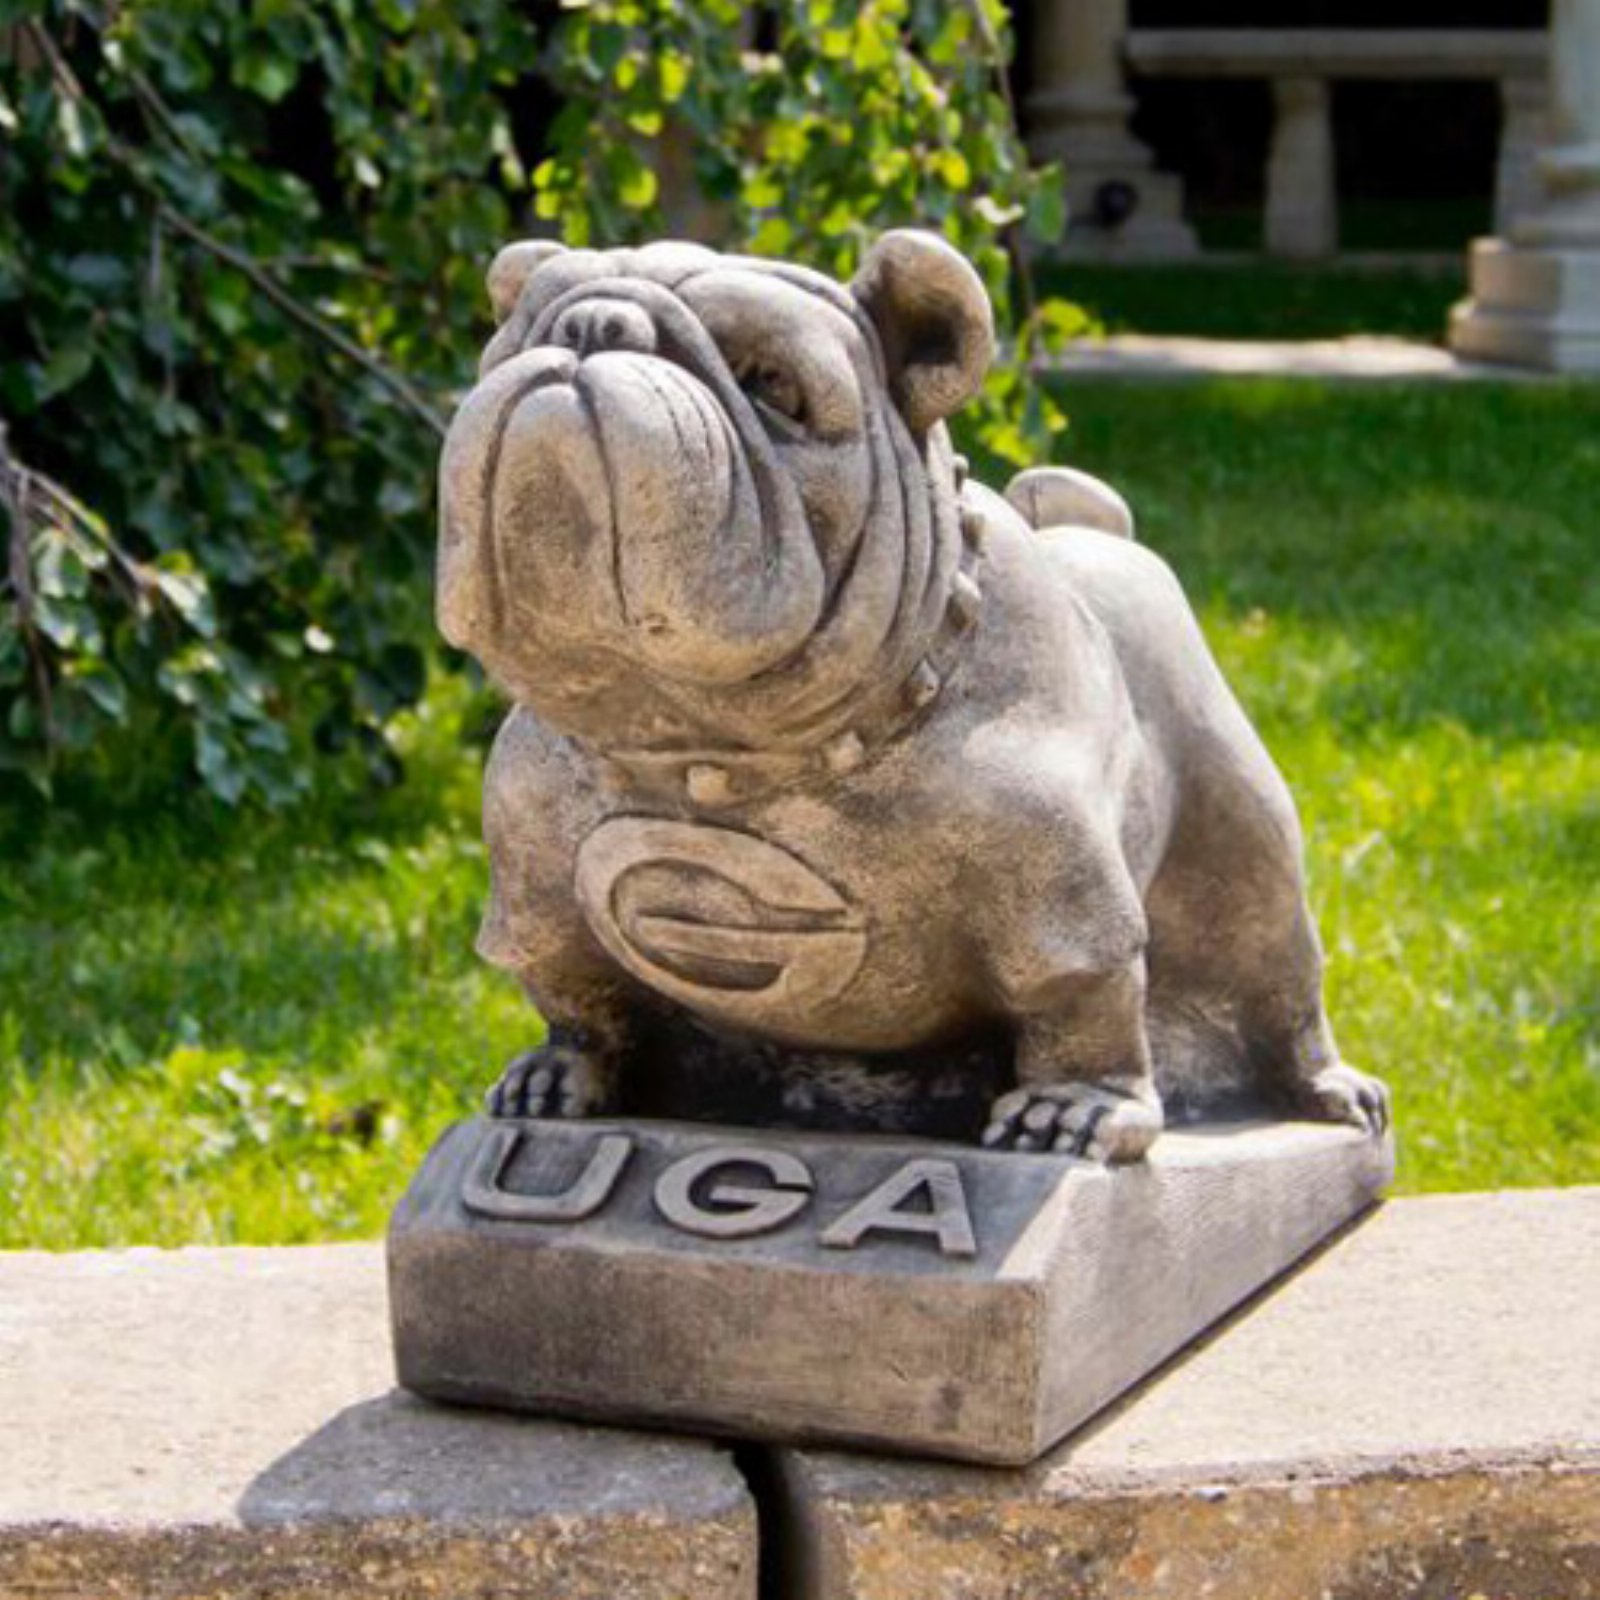 Sandicast Life Size Fawn Bulldog Puppy Sculpture Sitting By